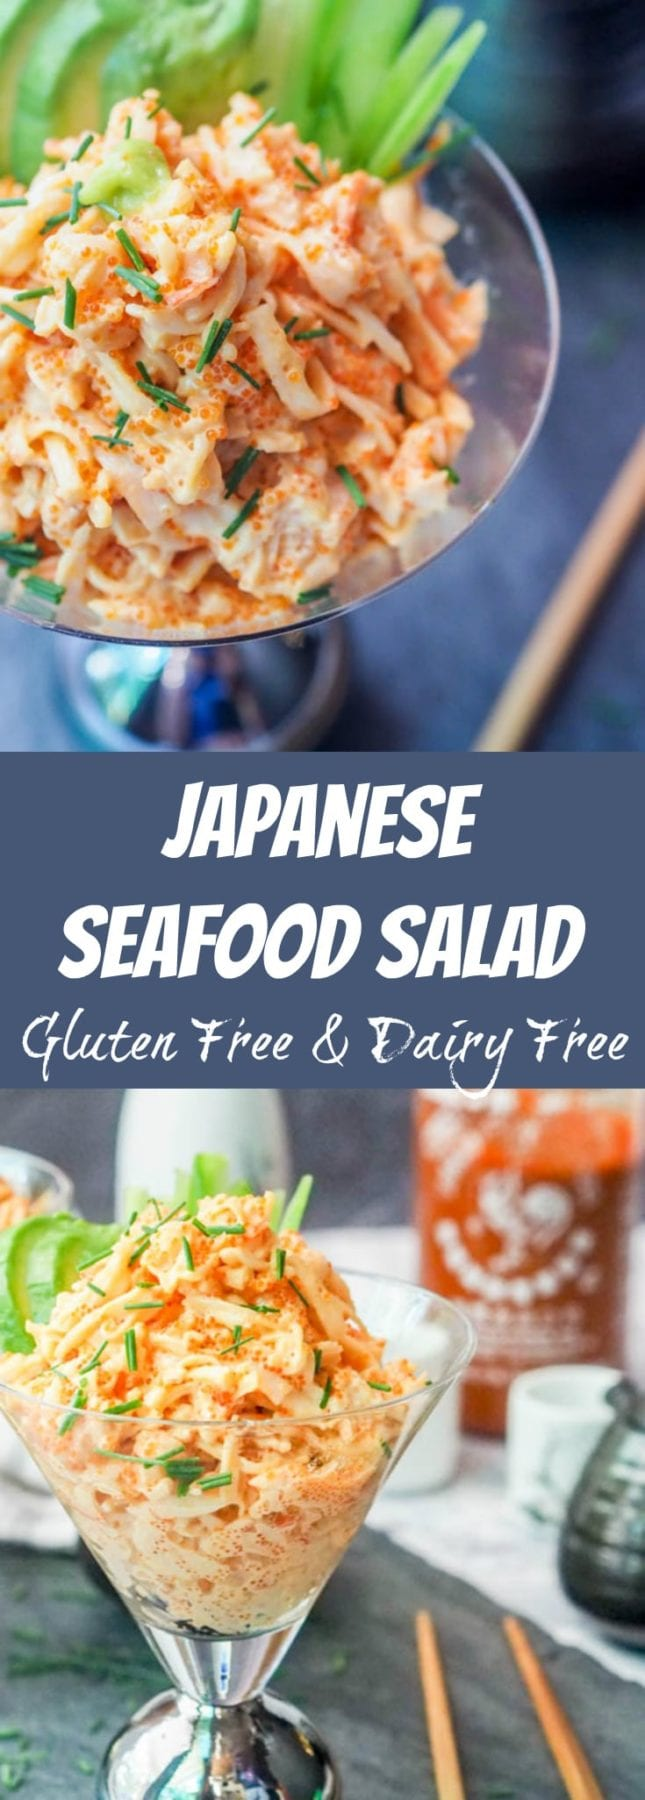 Seafood salad takes on an Asian flair and is made with crab, shrimp, tobiko and mayo with some added spice as well. Gluten-Free and Dairy-Free. A perfect appetizer to an Japanese or Asian themed meal. Ready in minutes. #salad #seafoodsalad #asianrecipe #appetizer